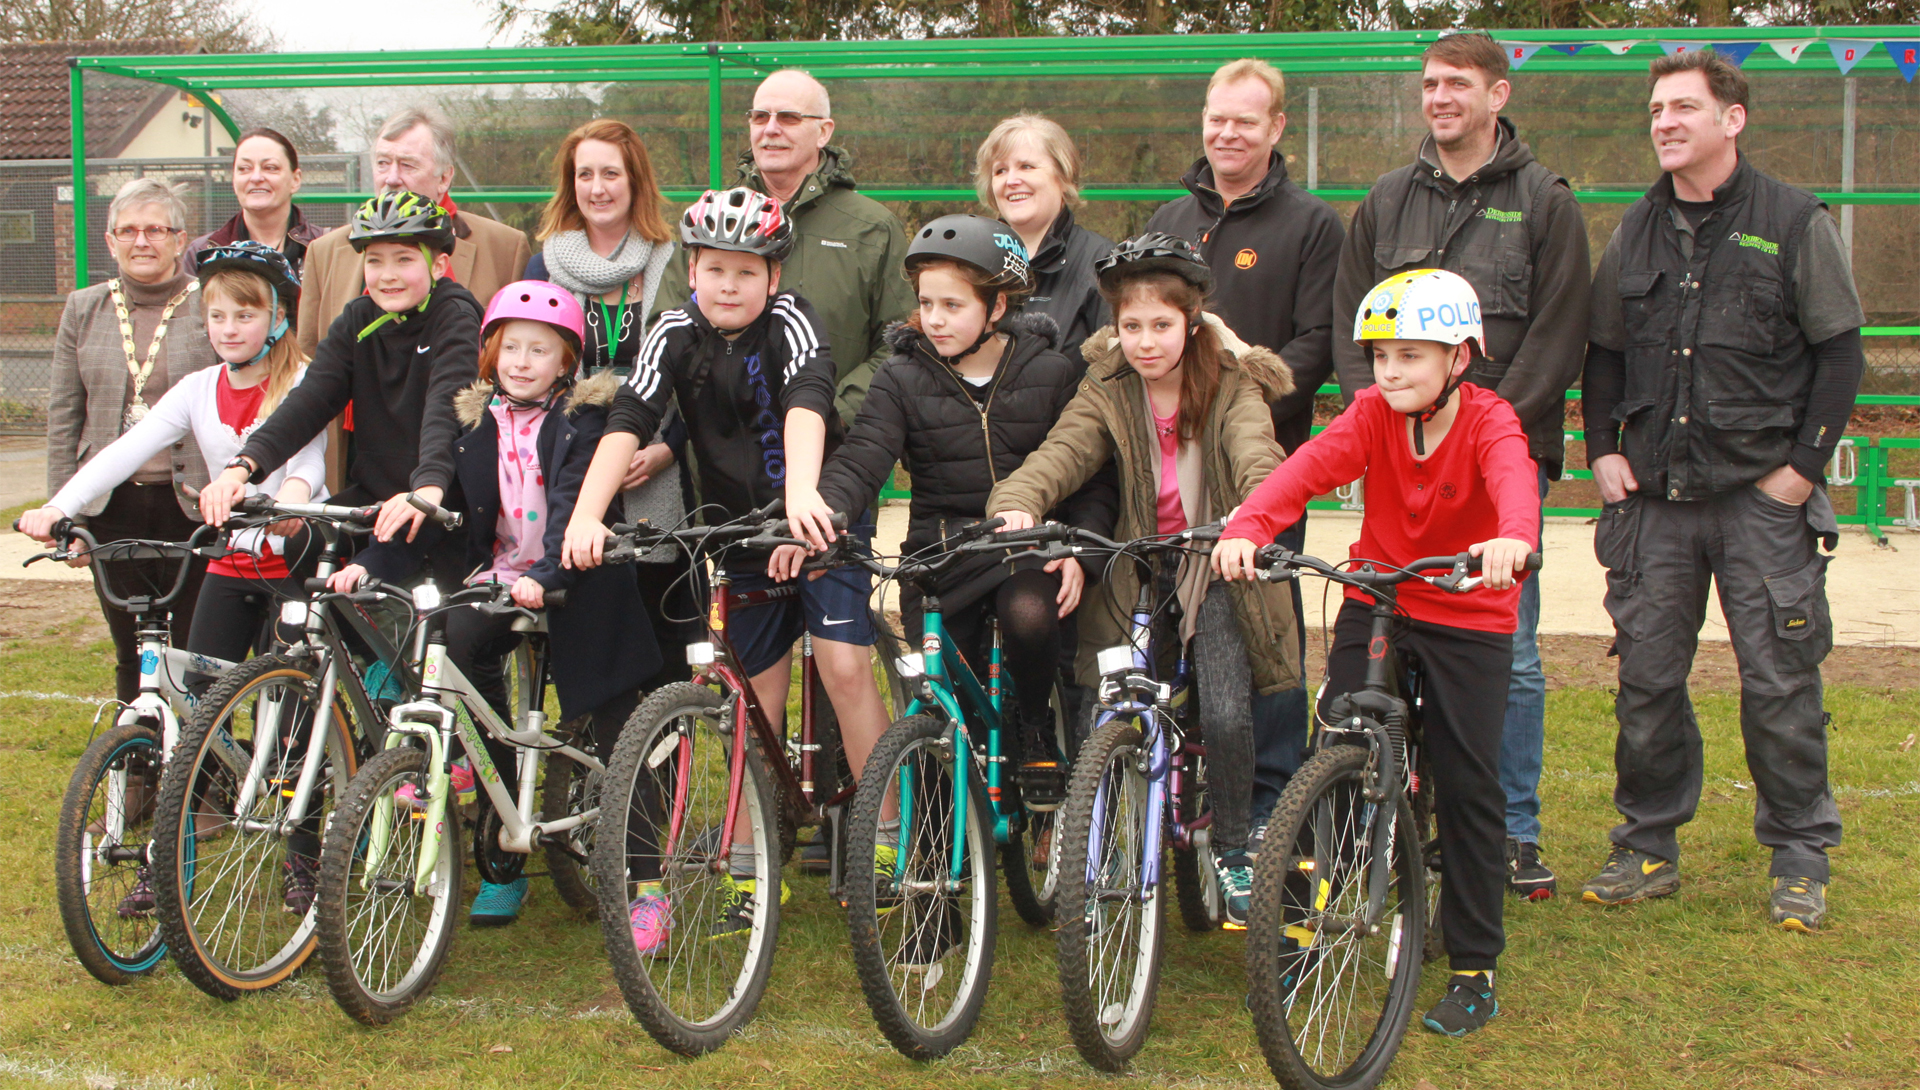 Suffolk school launch 'Bike for Life' cycling project